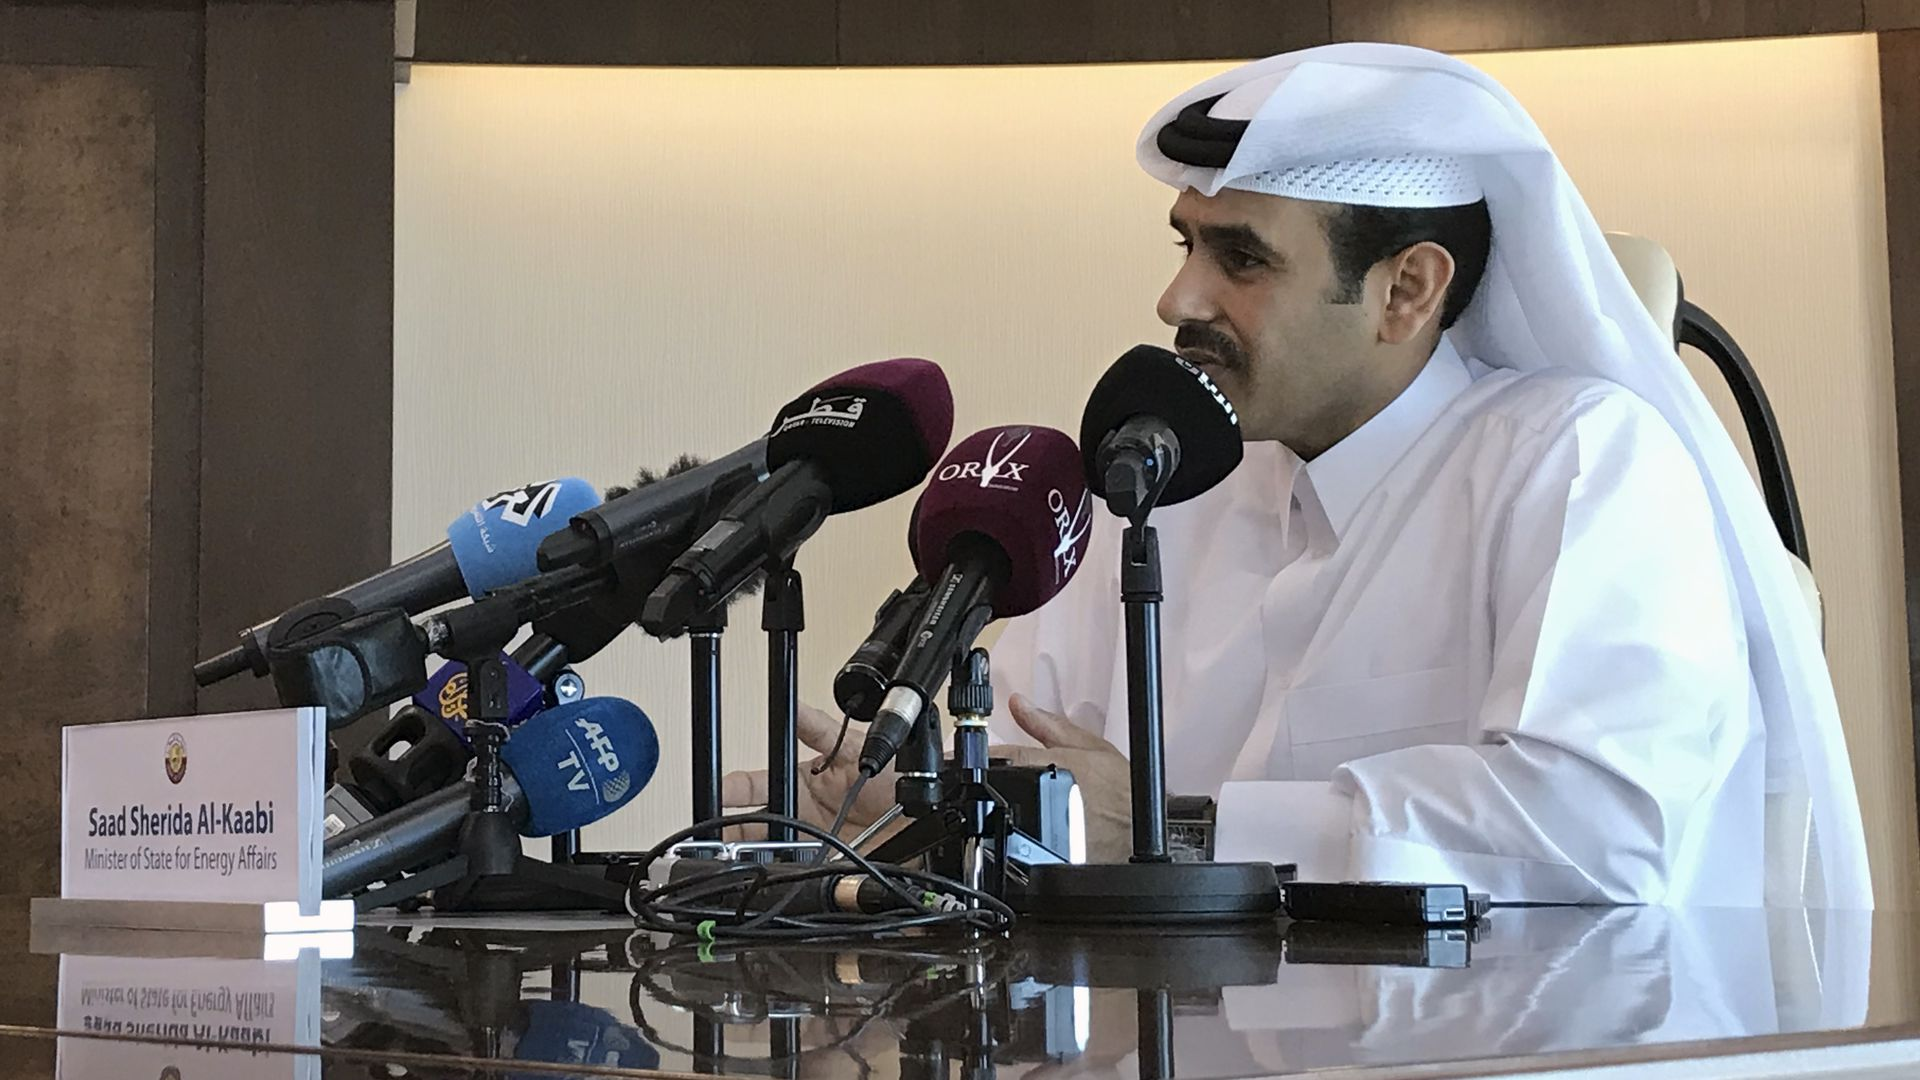 Qatar's OPEC exit signals intensifying energy competition beyond oil